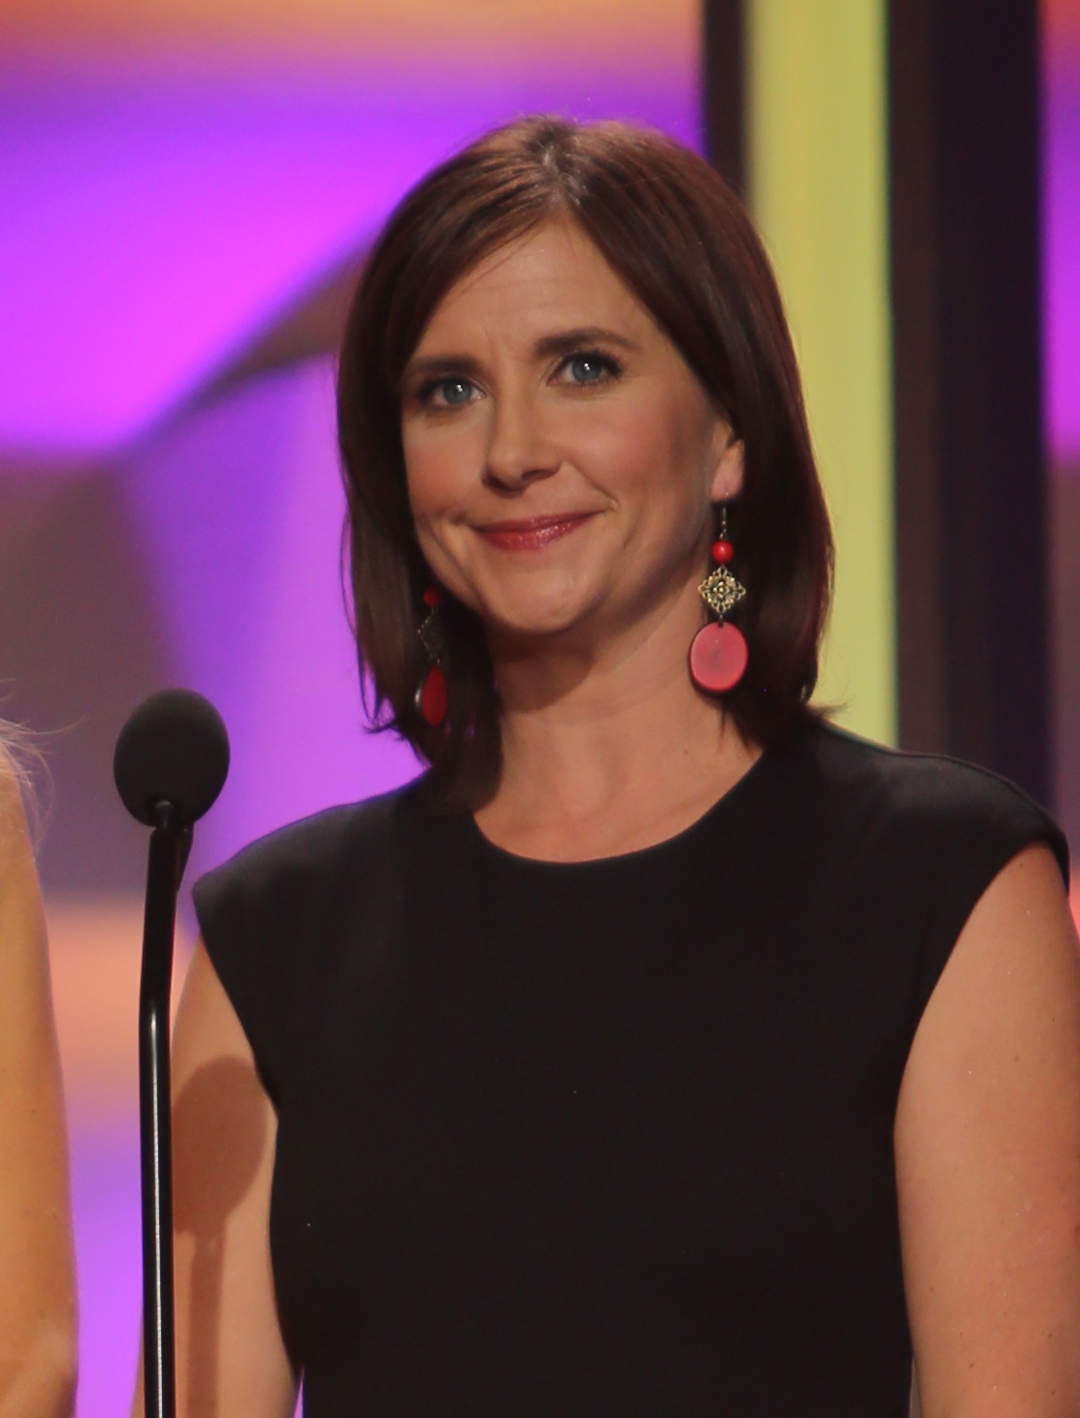 kellie martin erkellie martin wiki, kellie martin, kellie martin imdb, kellie martin actress, kellie martin instagram, kellie martin net worth, kellie martin movies and tv shows, kellie martin husband, kellie martin biography, kellie martin hallmark movies, kellie martin wedding, kellie martin er, kellie martin measurements, kellie martin hot, kellie martin grey's anatomy, kellie martin plastic surgery